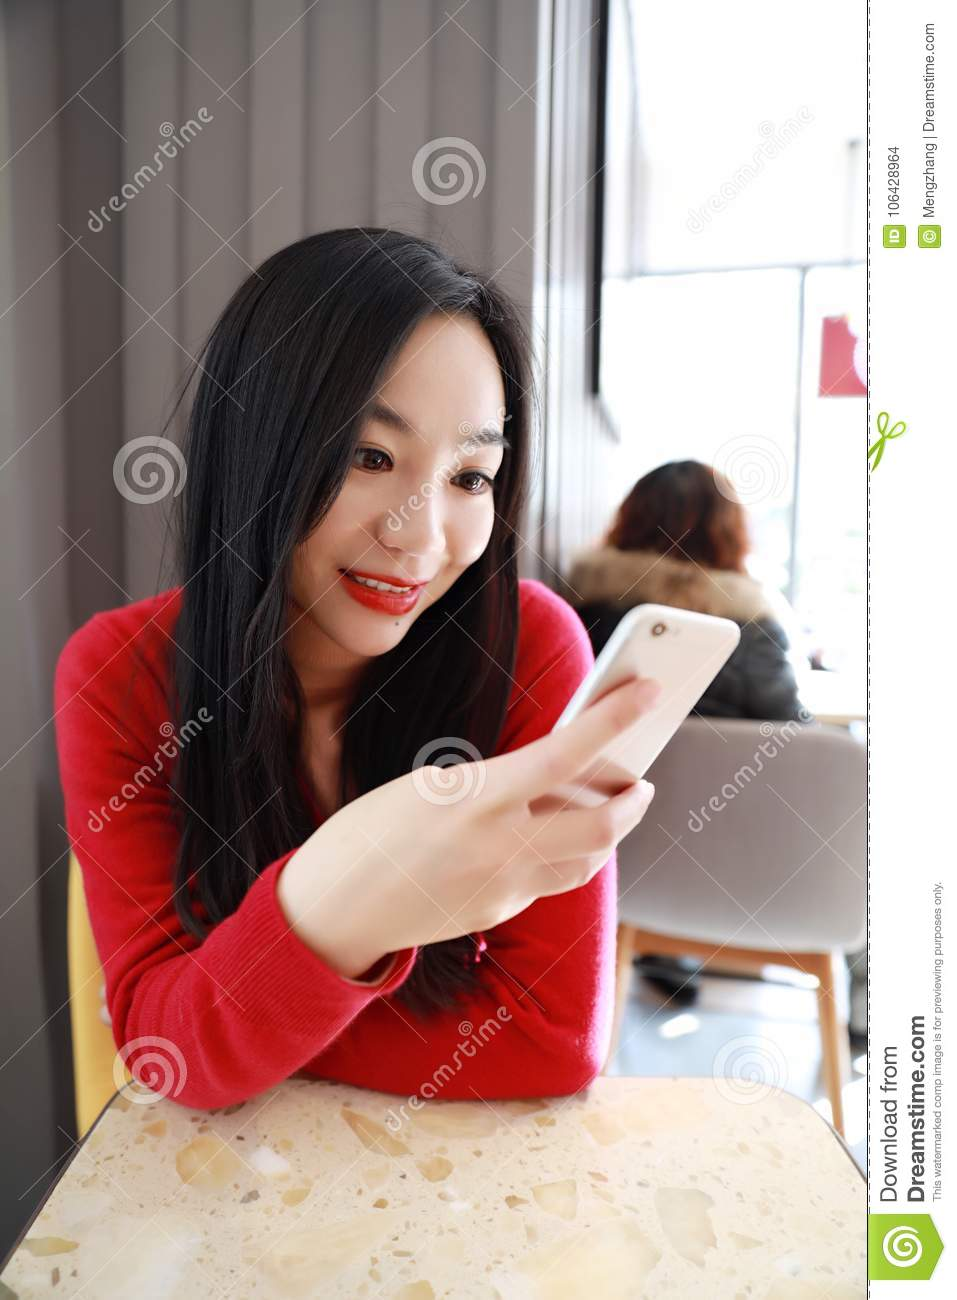 Self employed china woman working with her phone and laptop in a restaurant